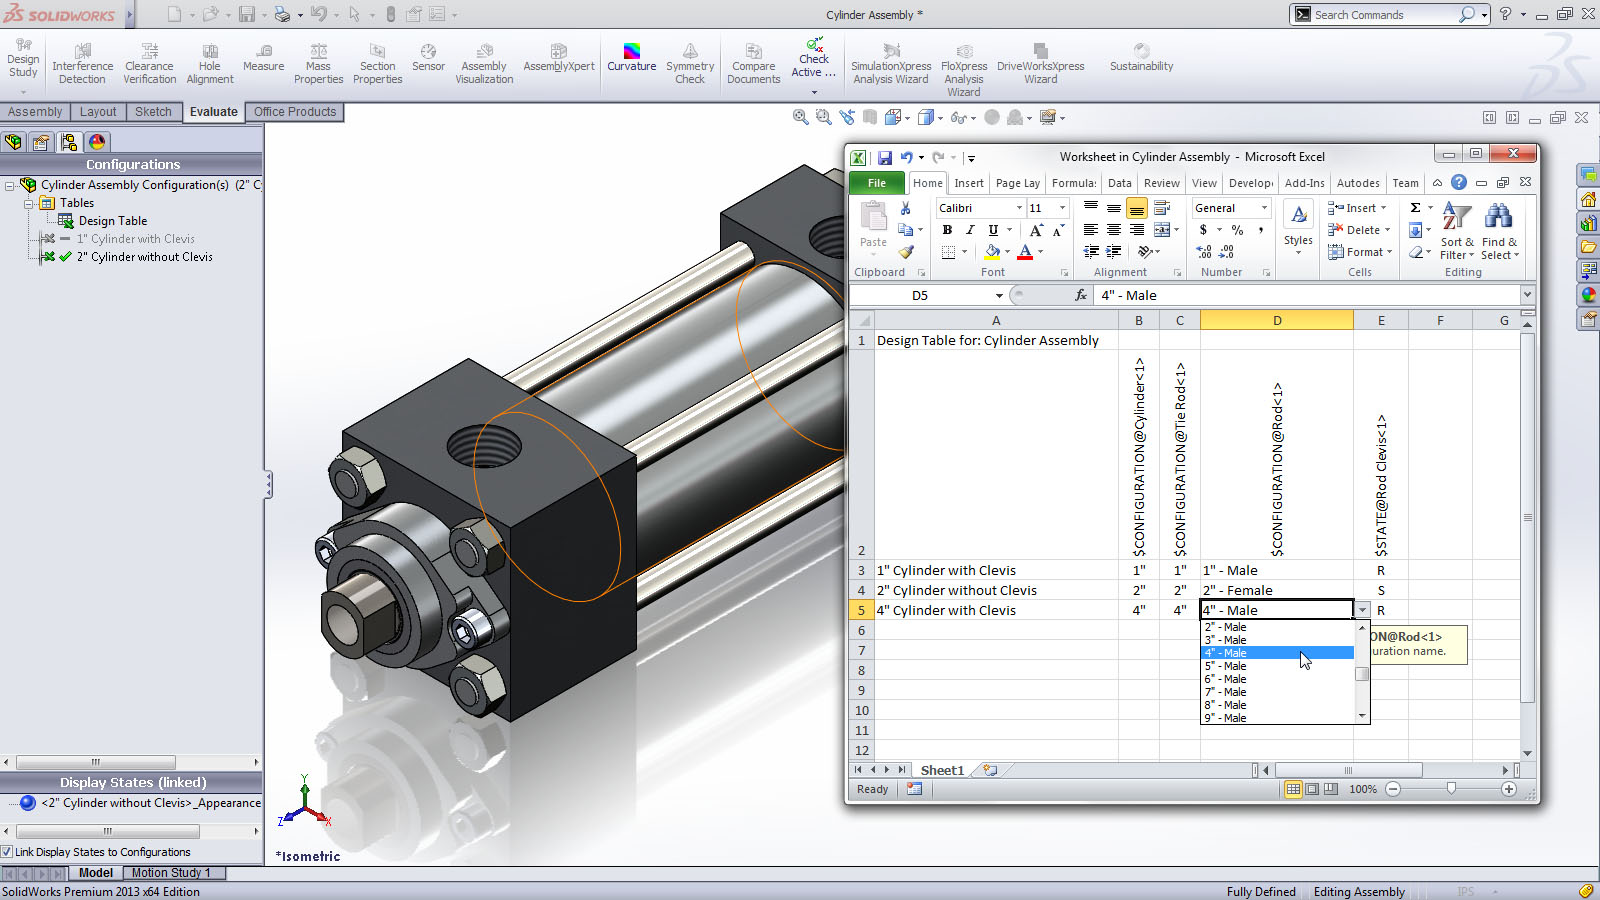 Solidworks 2013 announced ricky jordan 39 s blog for Design table not working solidworks